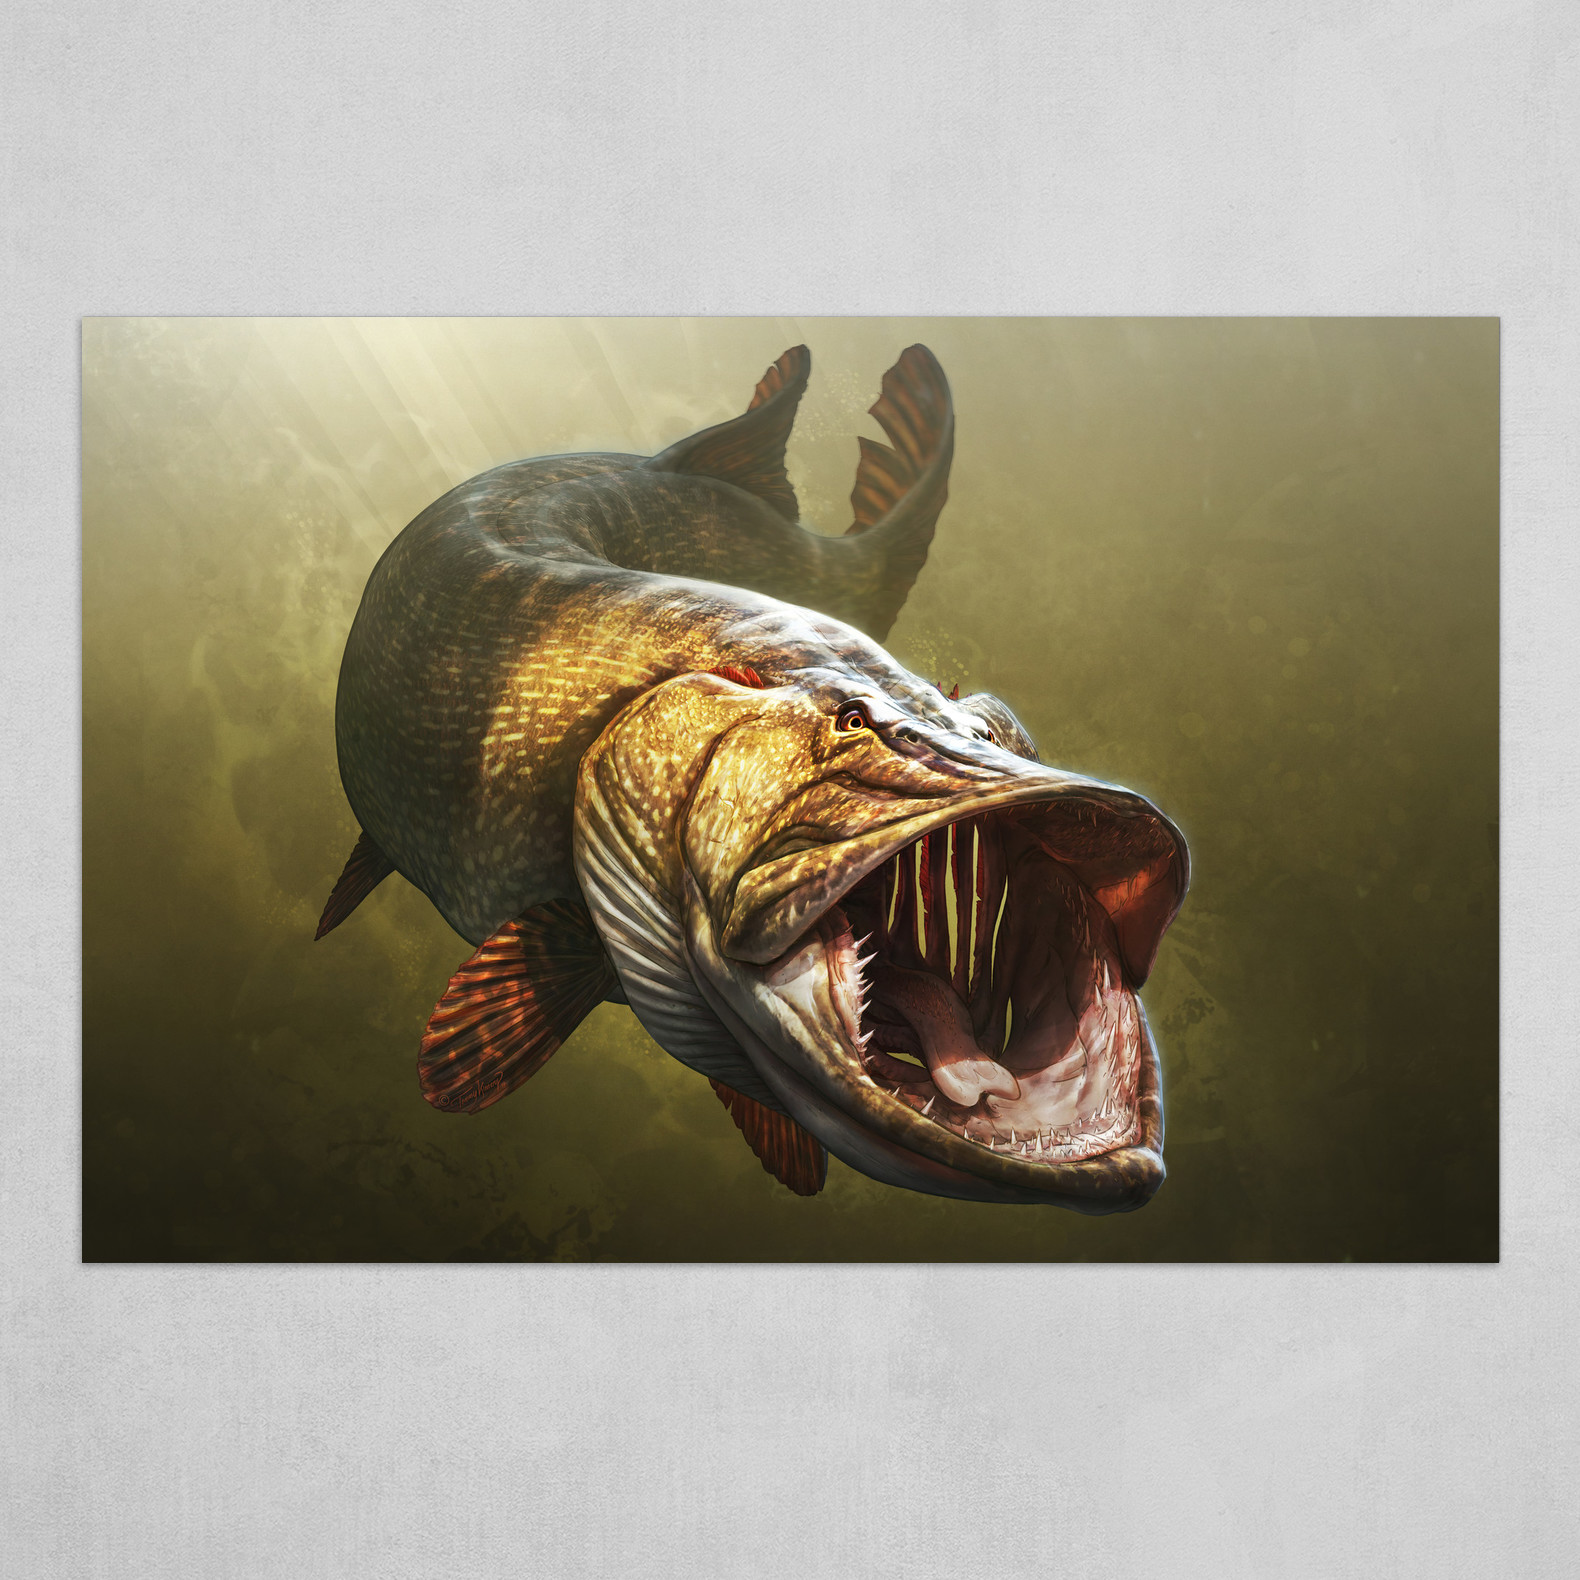 Legendary Giant Pike